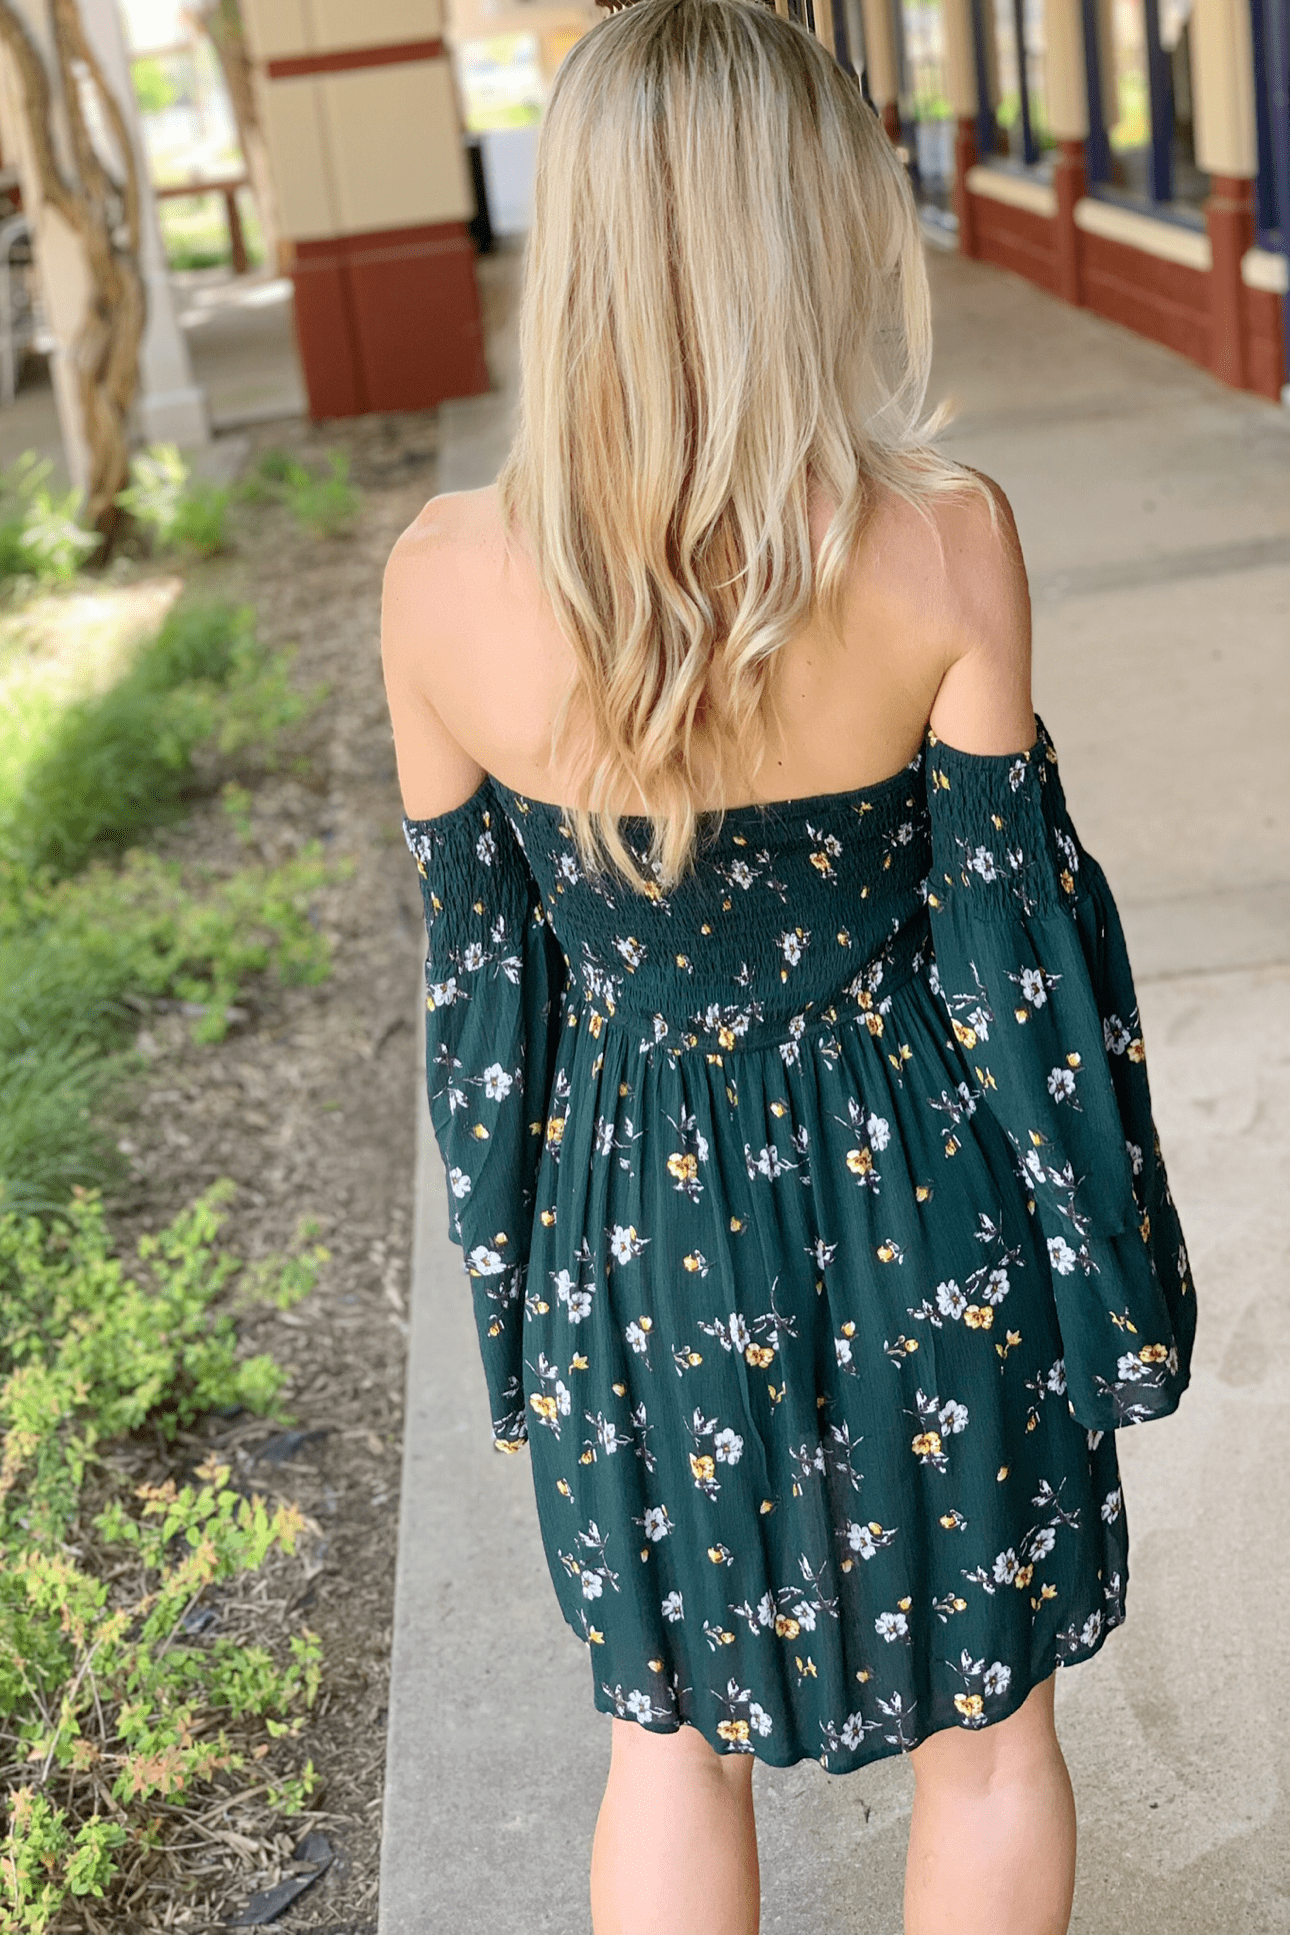 KEEP IT SWEET OFF SHOULDER FLORAL DRESS-EVERGREEN - Infinity Raine